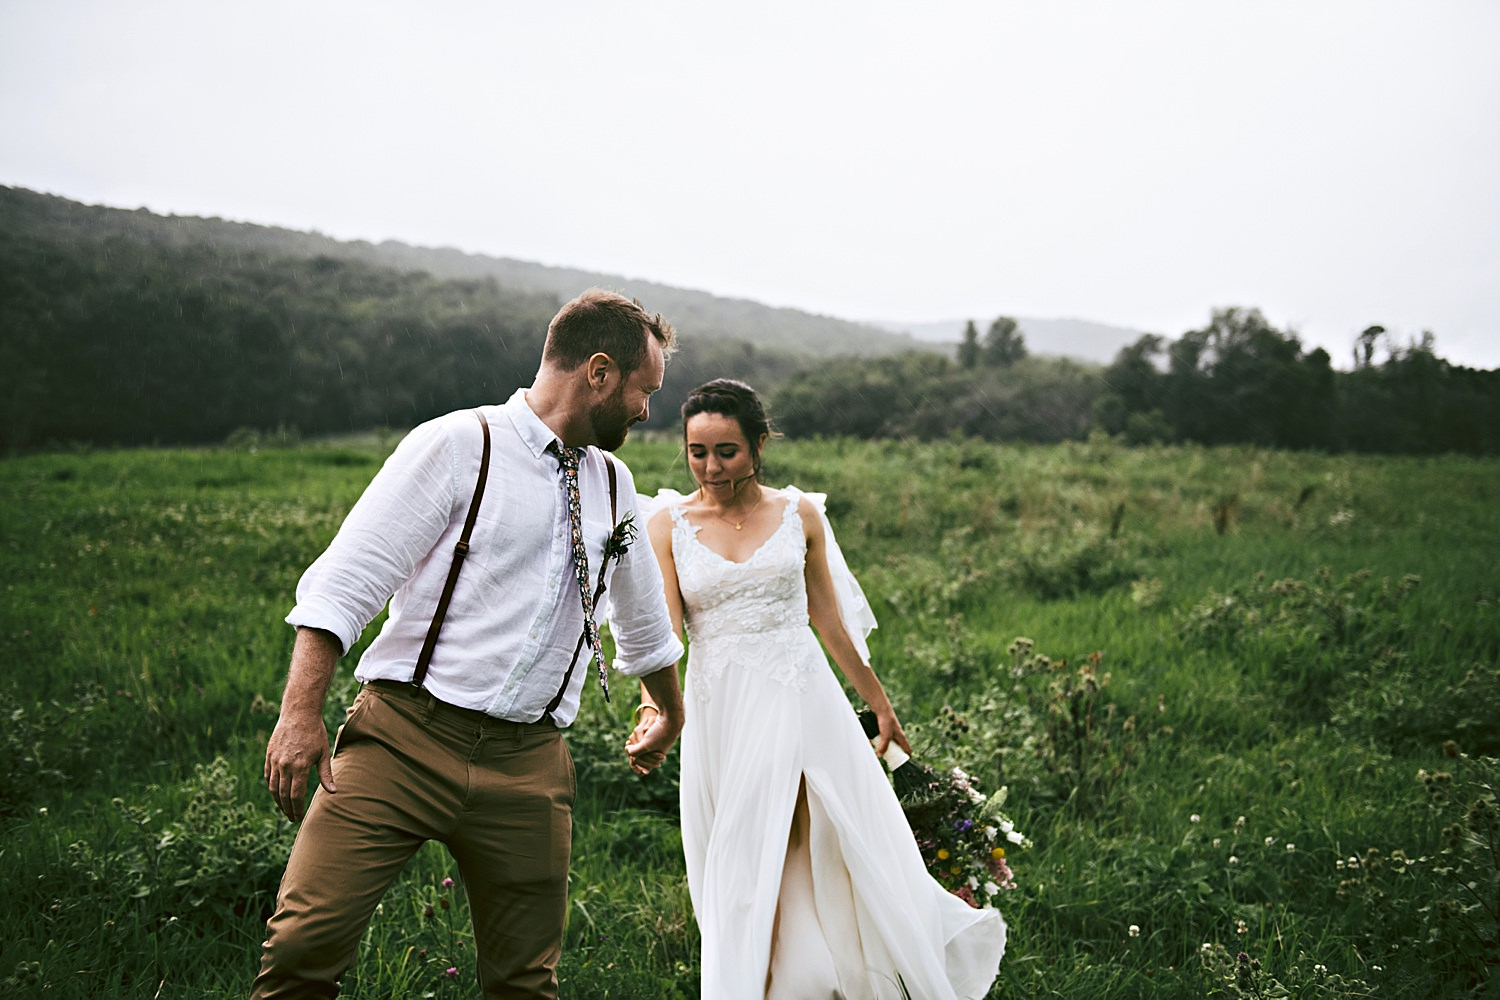 Bride and groom embracing in the rainy field